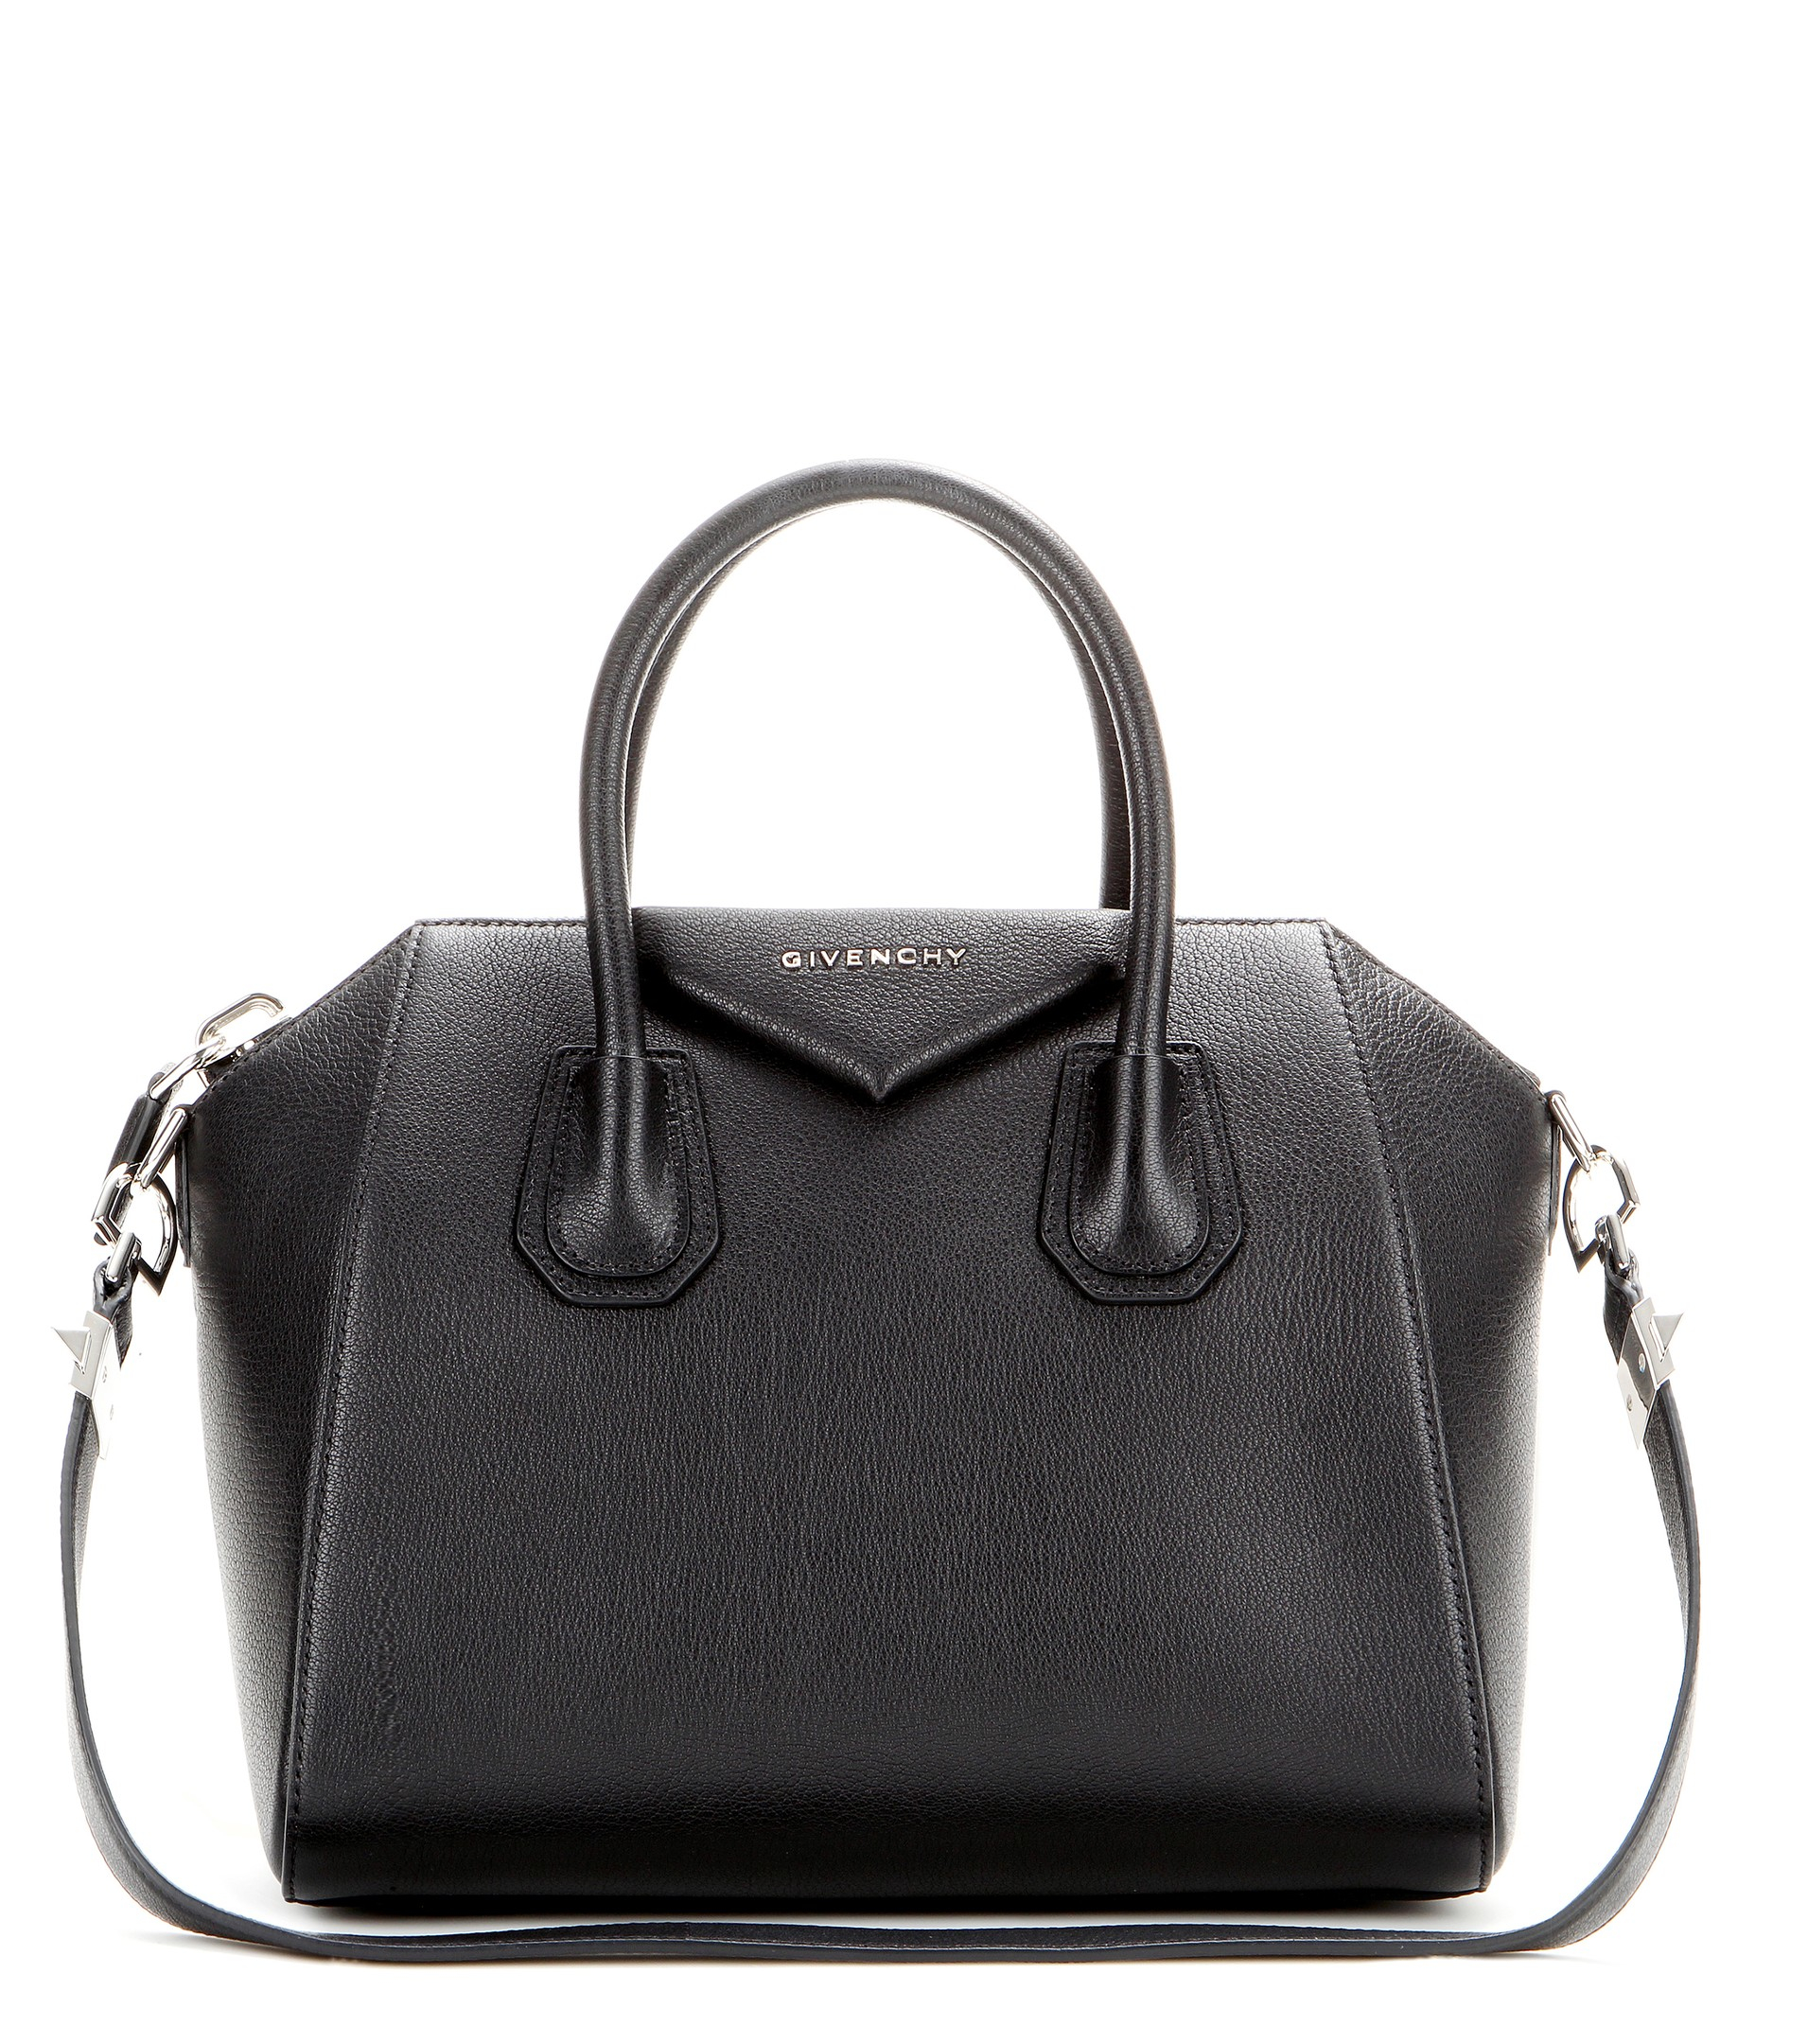 lyst givenchy antigona small leather tote in black. Black Bedroom Furniture Sets. Home Design Ideas